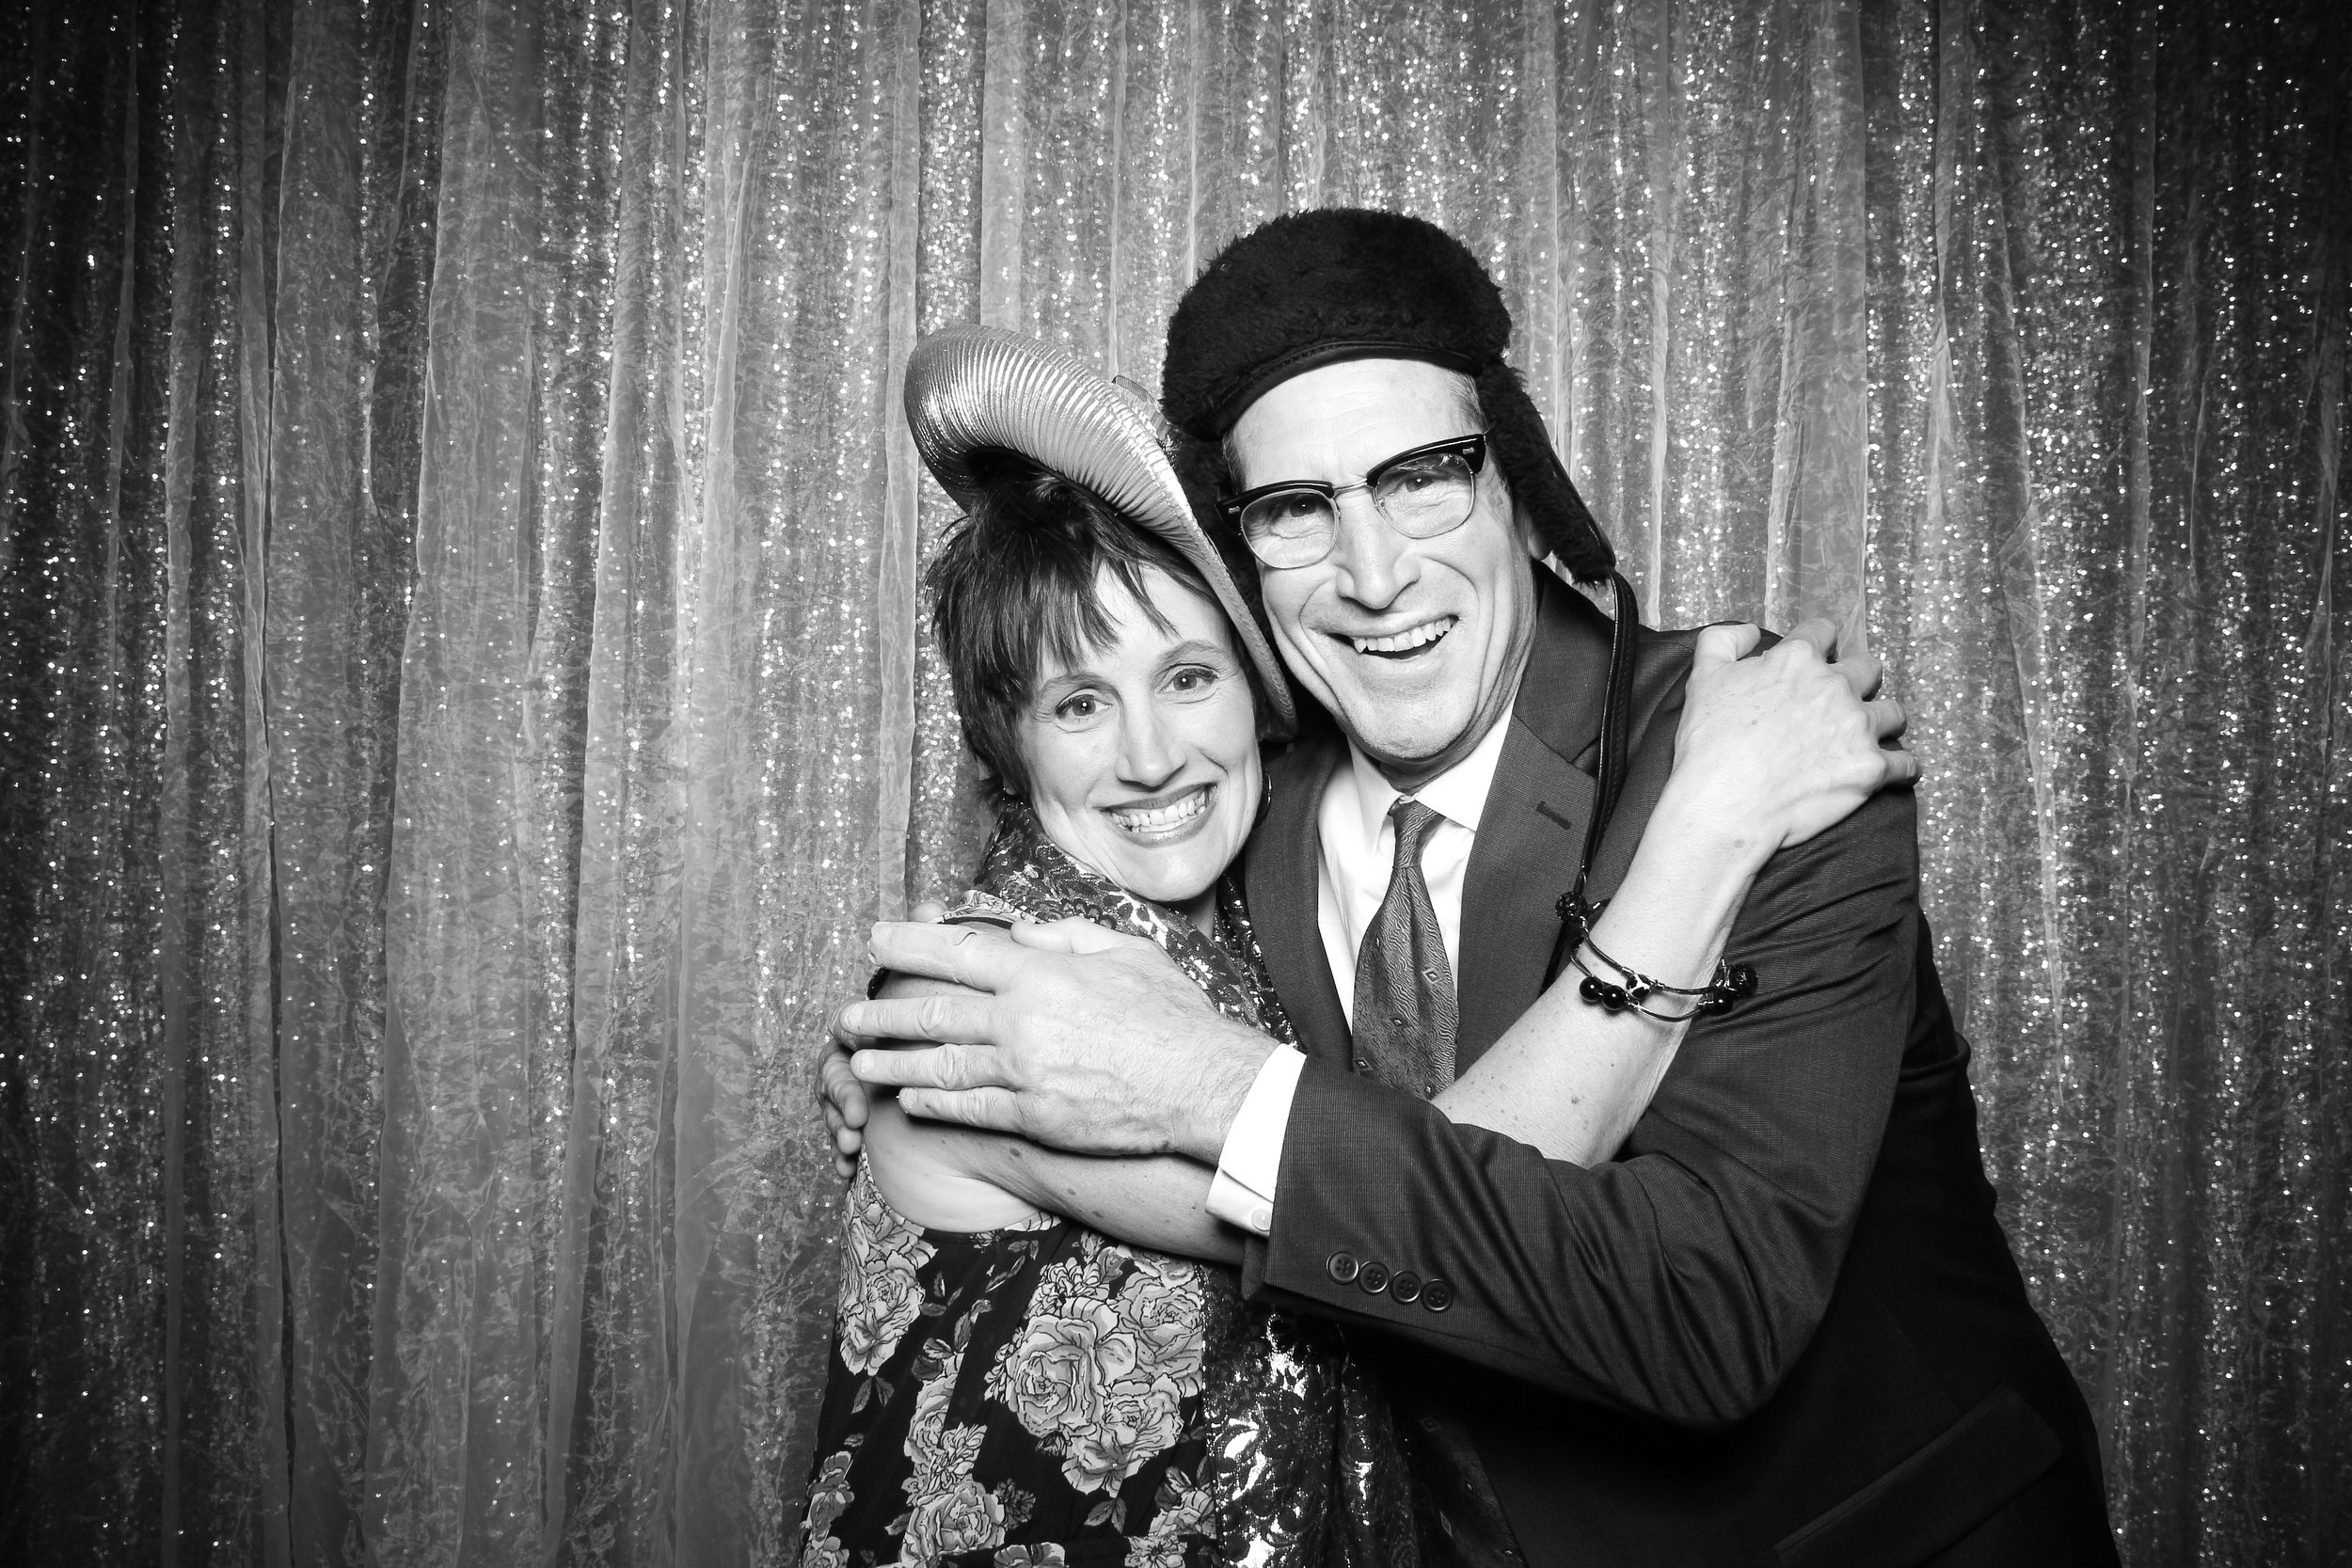 Chicago_Vintage_Wedding_Photobooth_Glen_Club_13.jpg